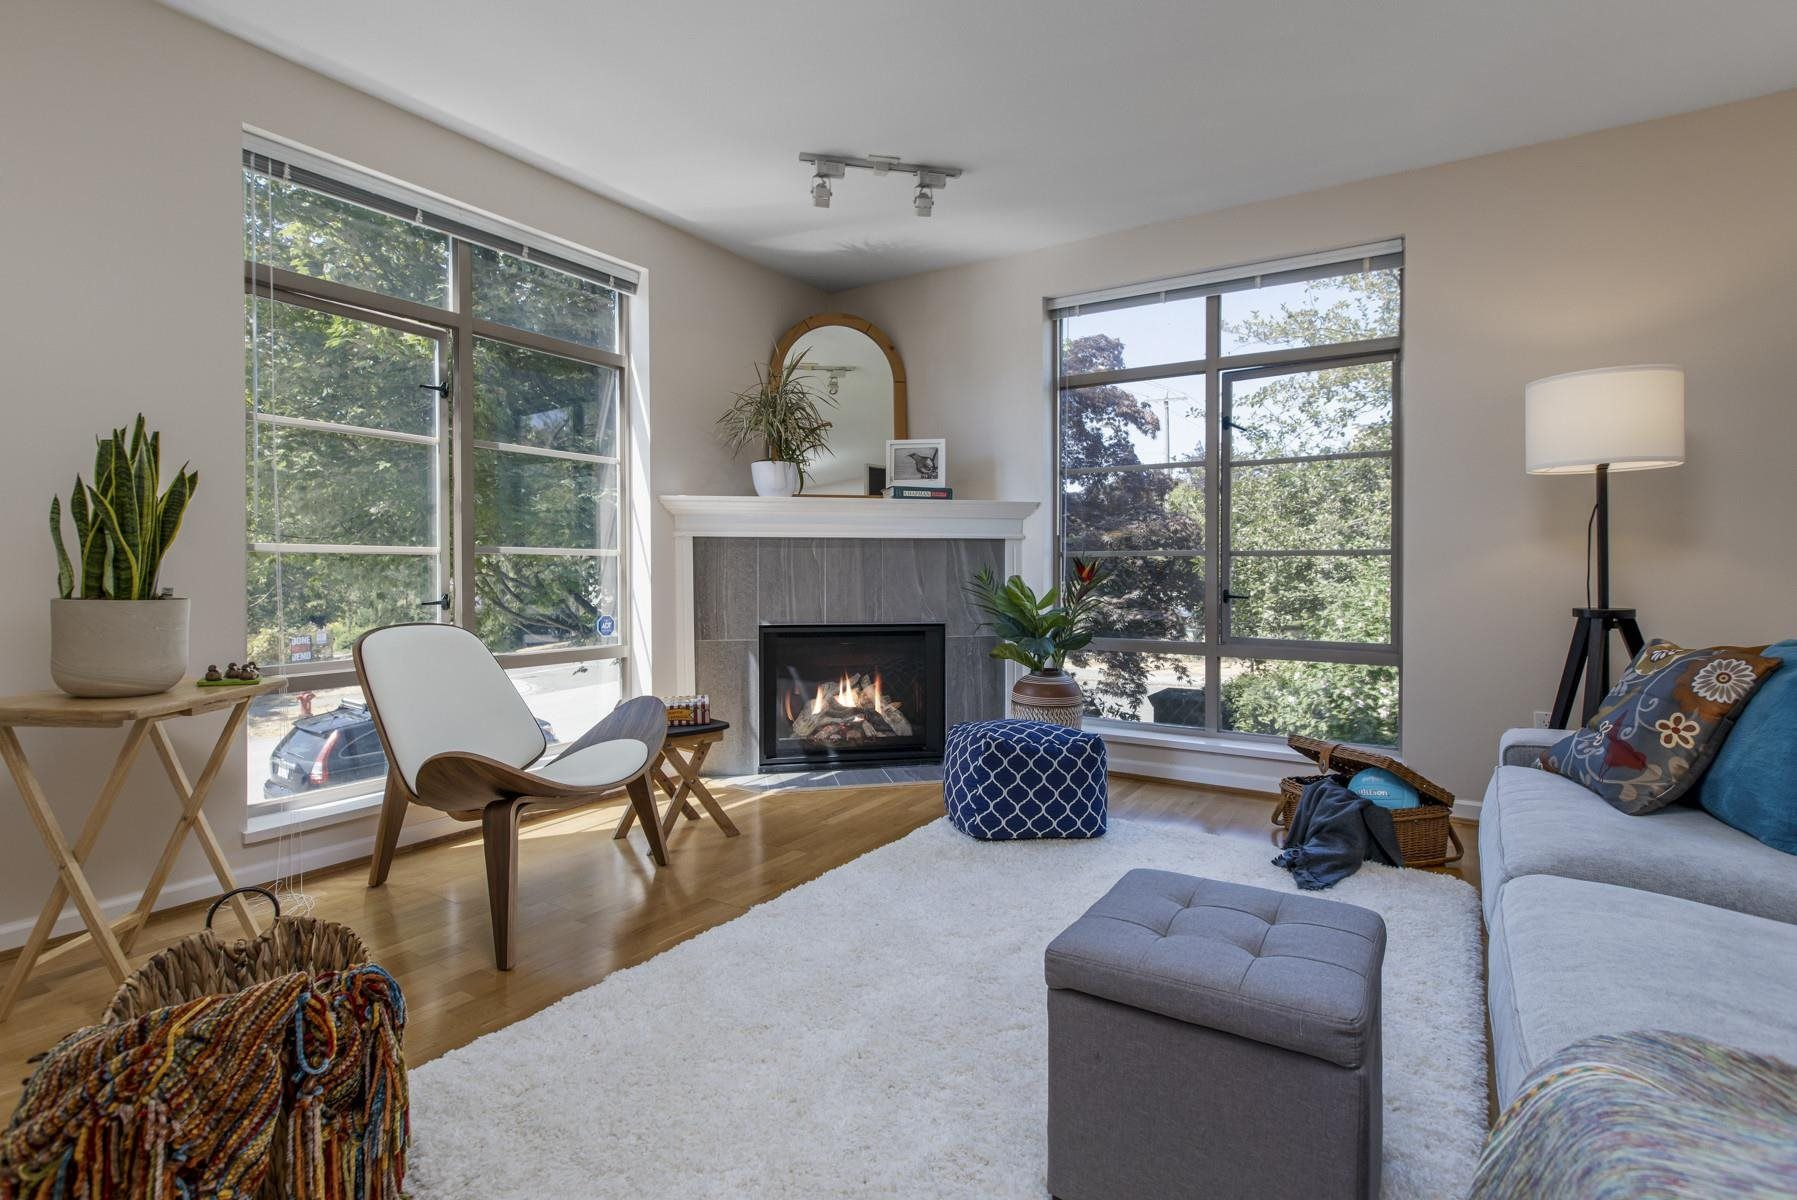 """Main Photo: 203 2490 W 2ND Avenue in Vancouver: Kitsilano Condo for sale in """"Trinity Place"""" (Vancouver West)  : MLS®# R2606800"""